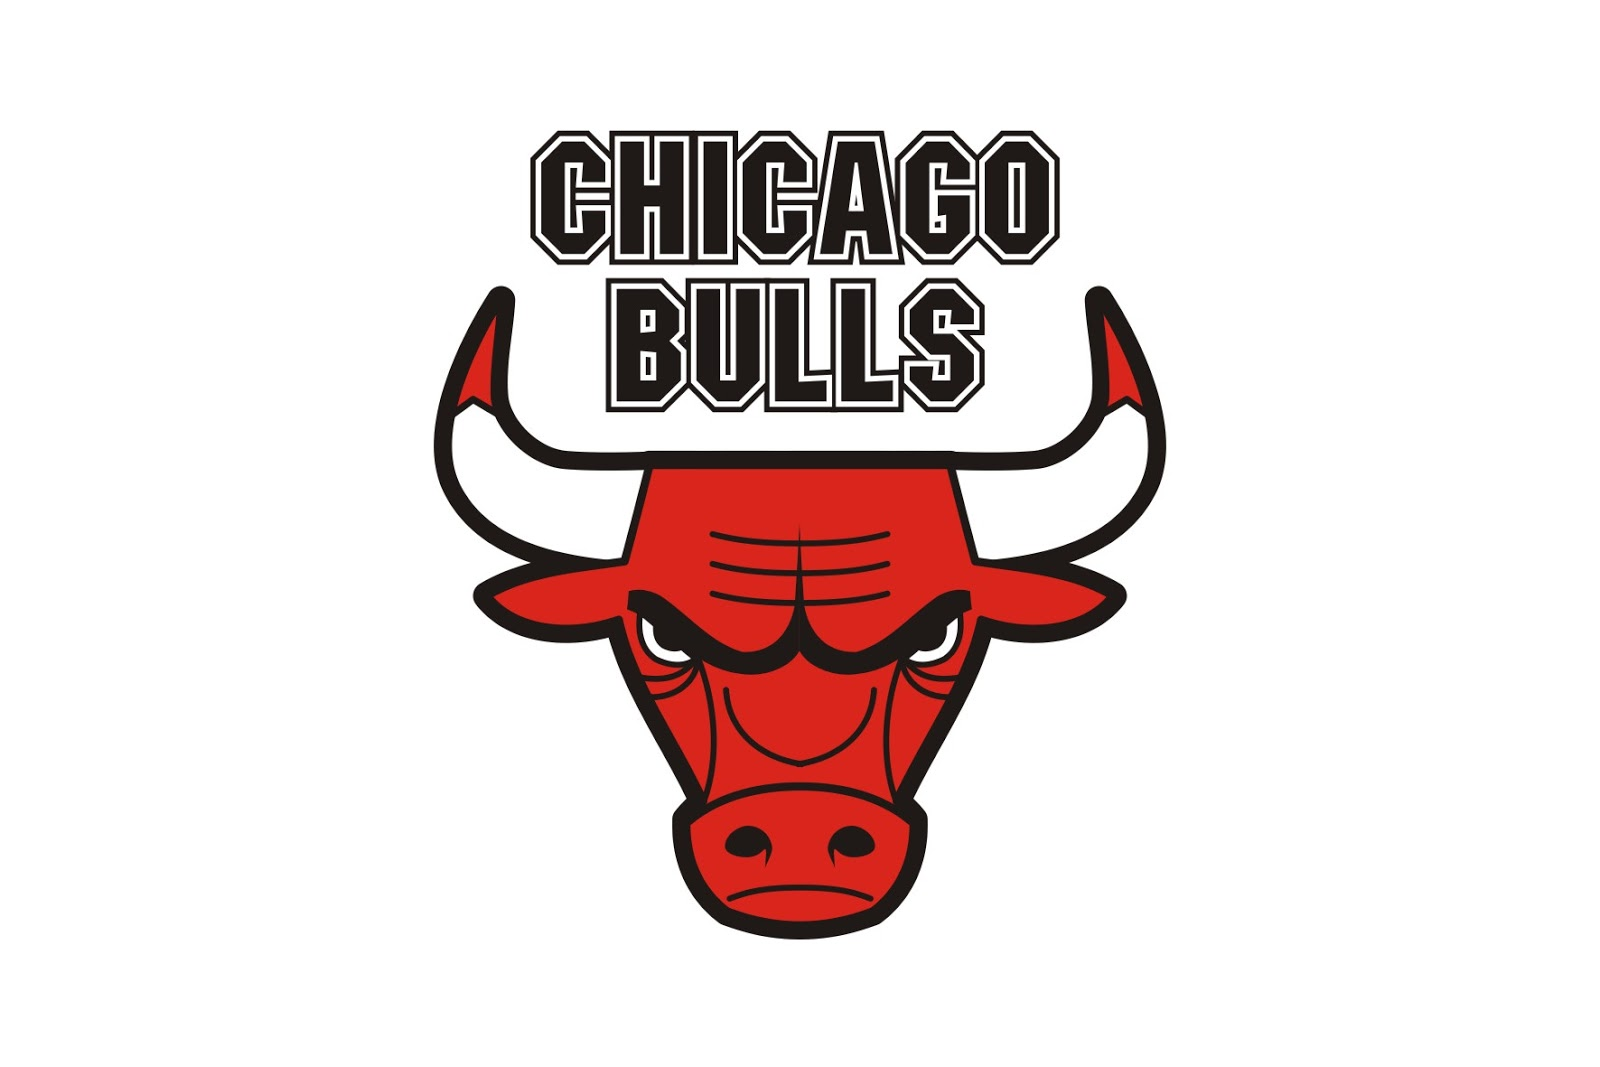 Chicago Bulls Logo Wallpaper Hd Posted By John Anderson